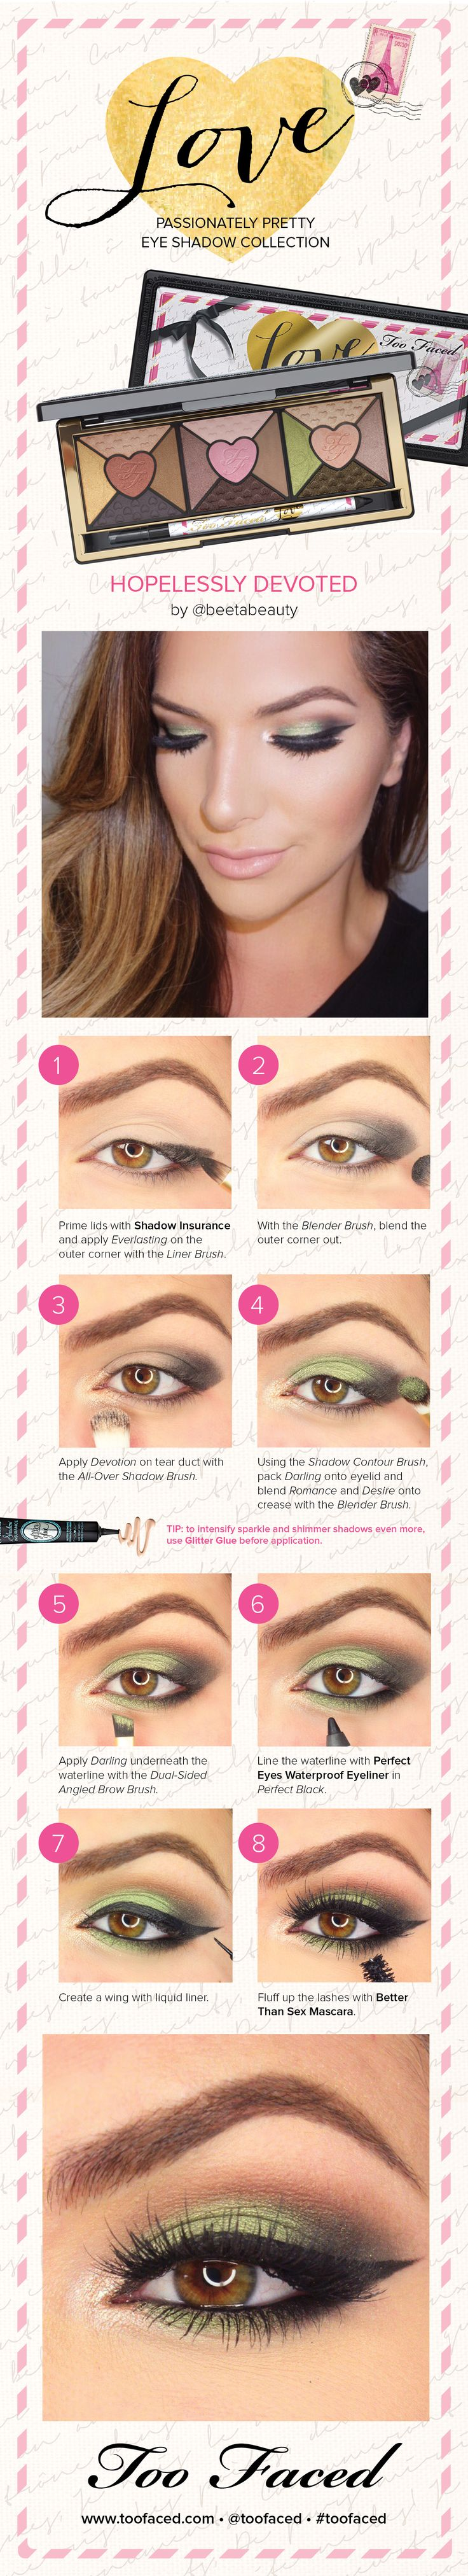 YouTube Beauty Star @beetabeauty uses Too Faced's NEW Love Palette to get the look! #toofaced